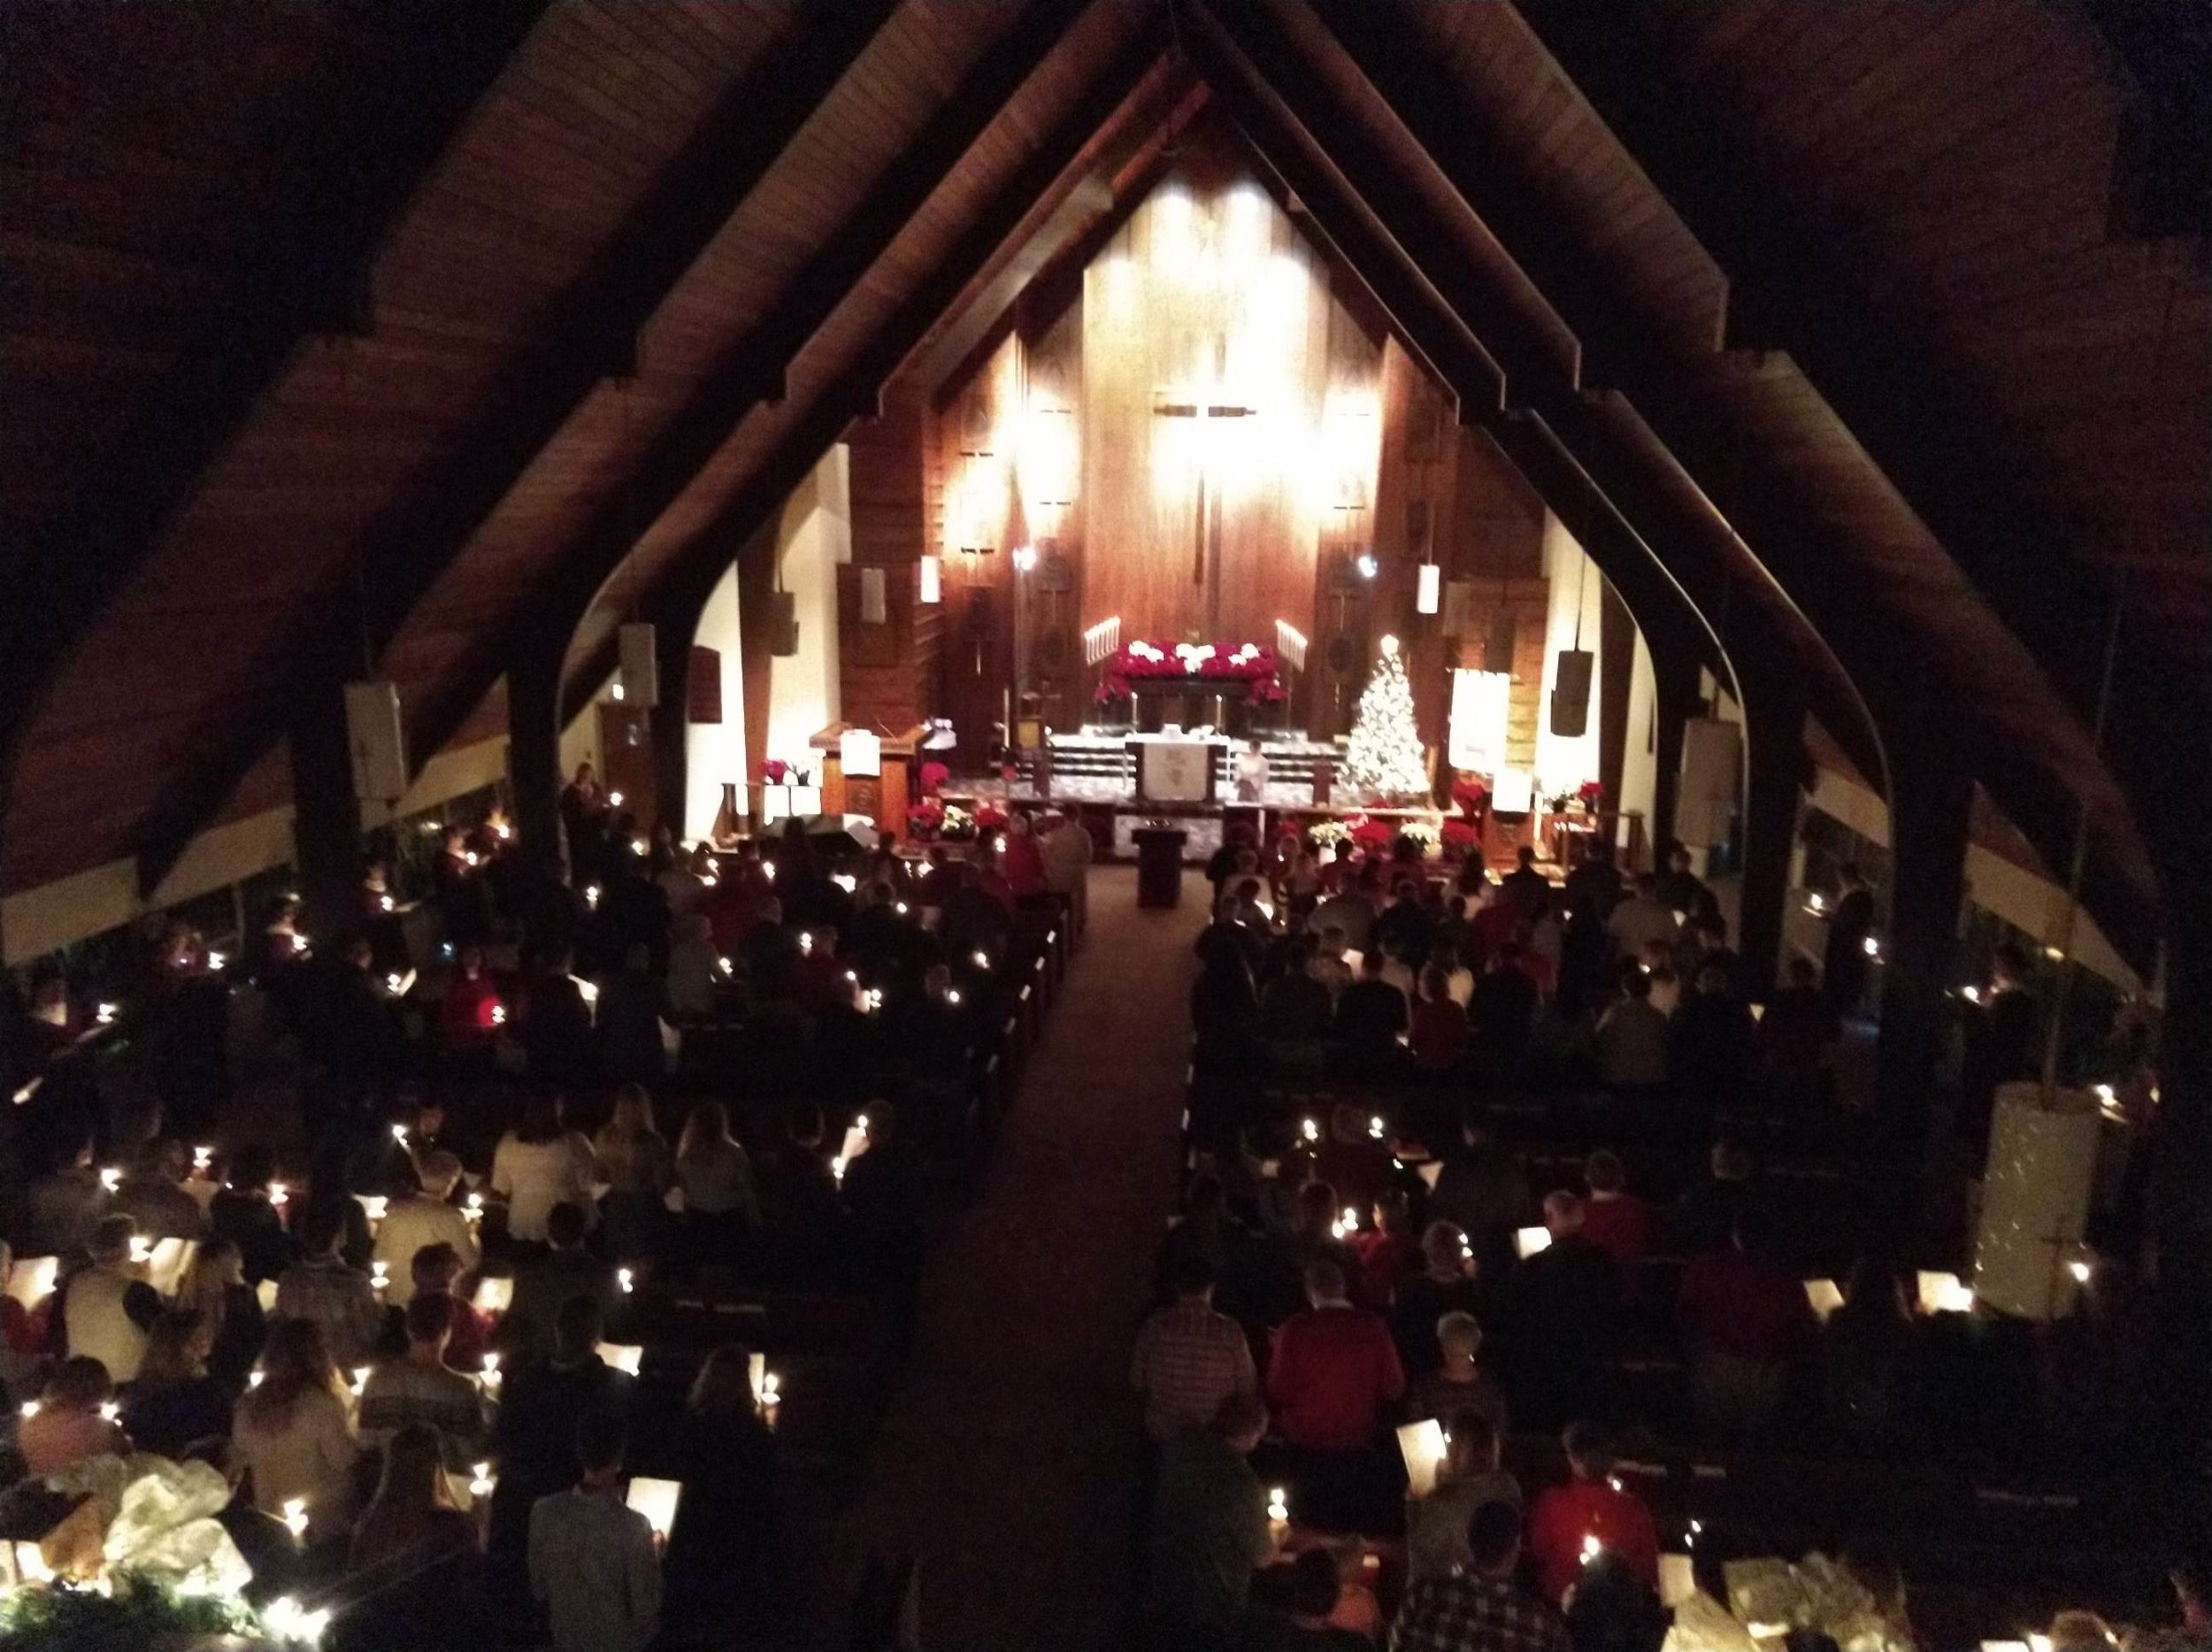 Christmas Eve candle light service at Good Hope Lutheran Church, 2019. (photo by Jake Kosker)